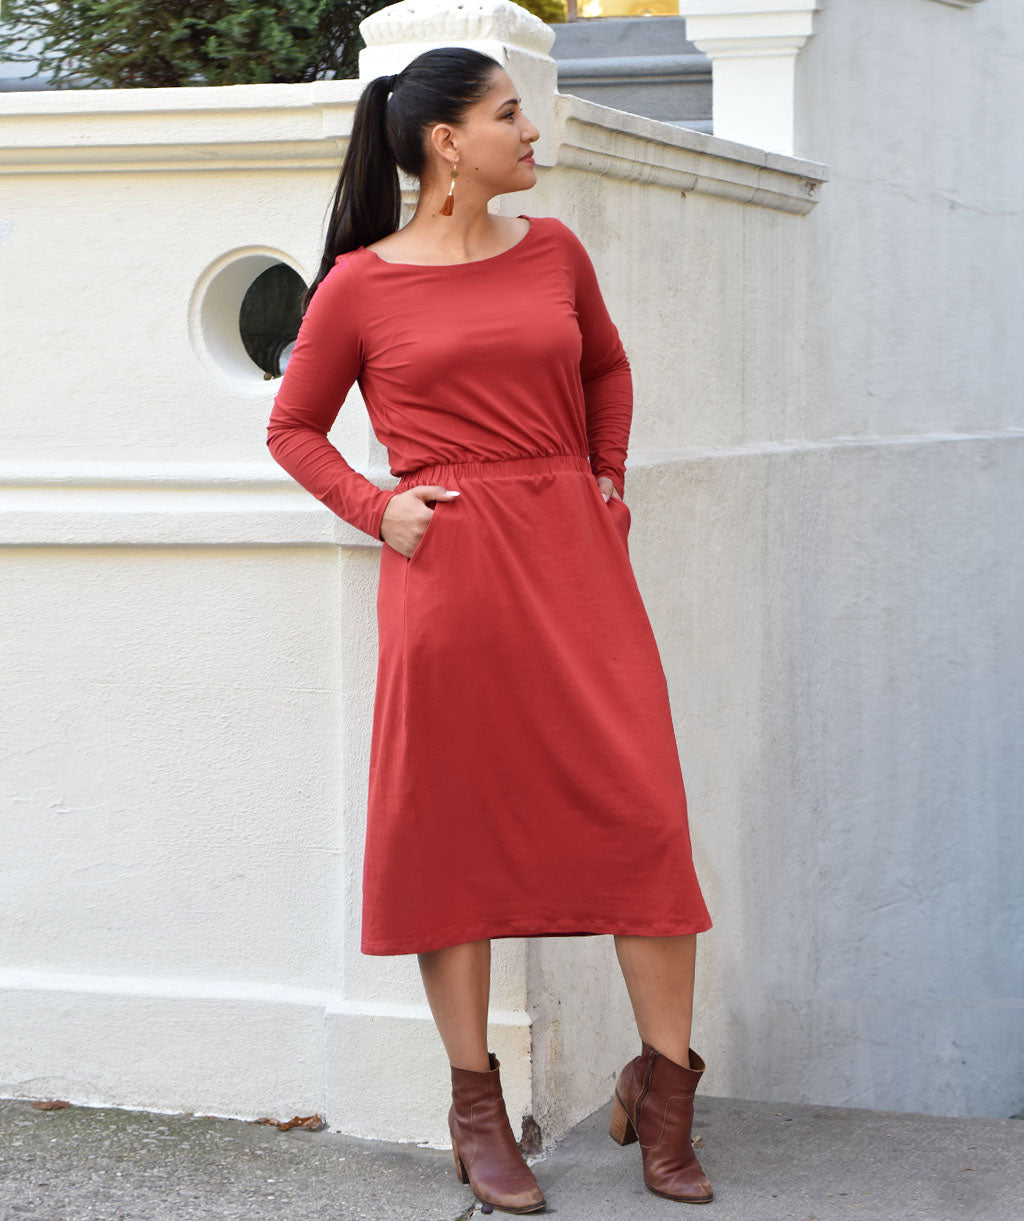 The GIANNA dress in Auburn Red